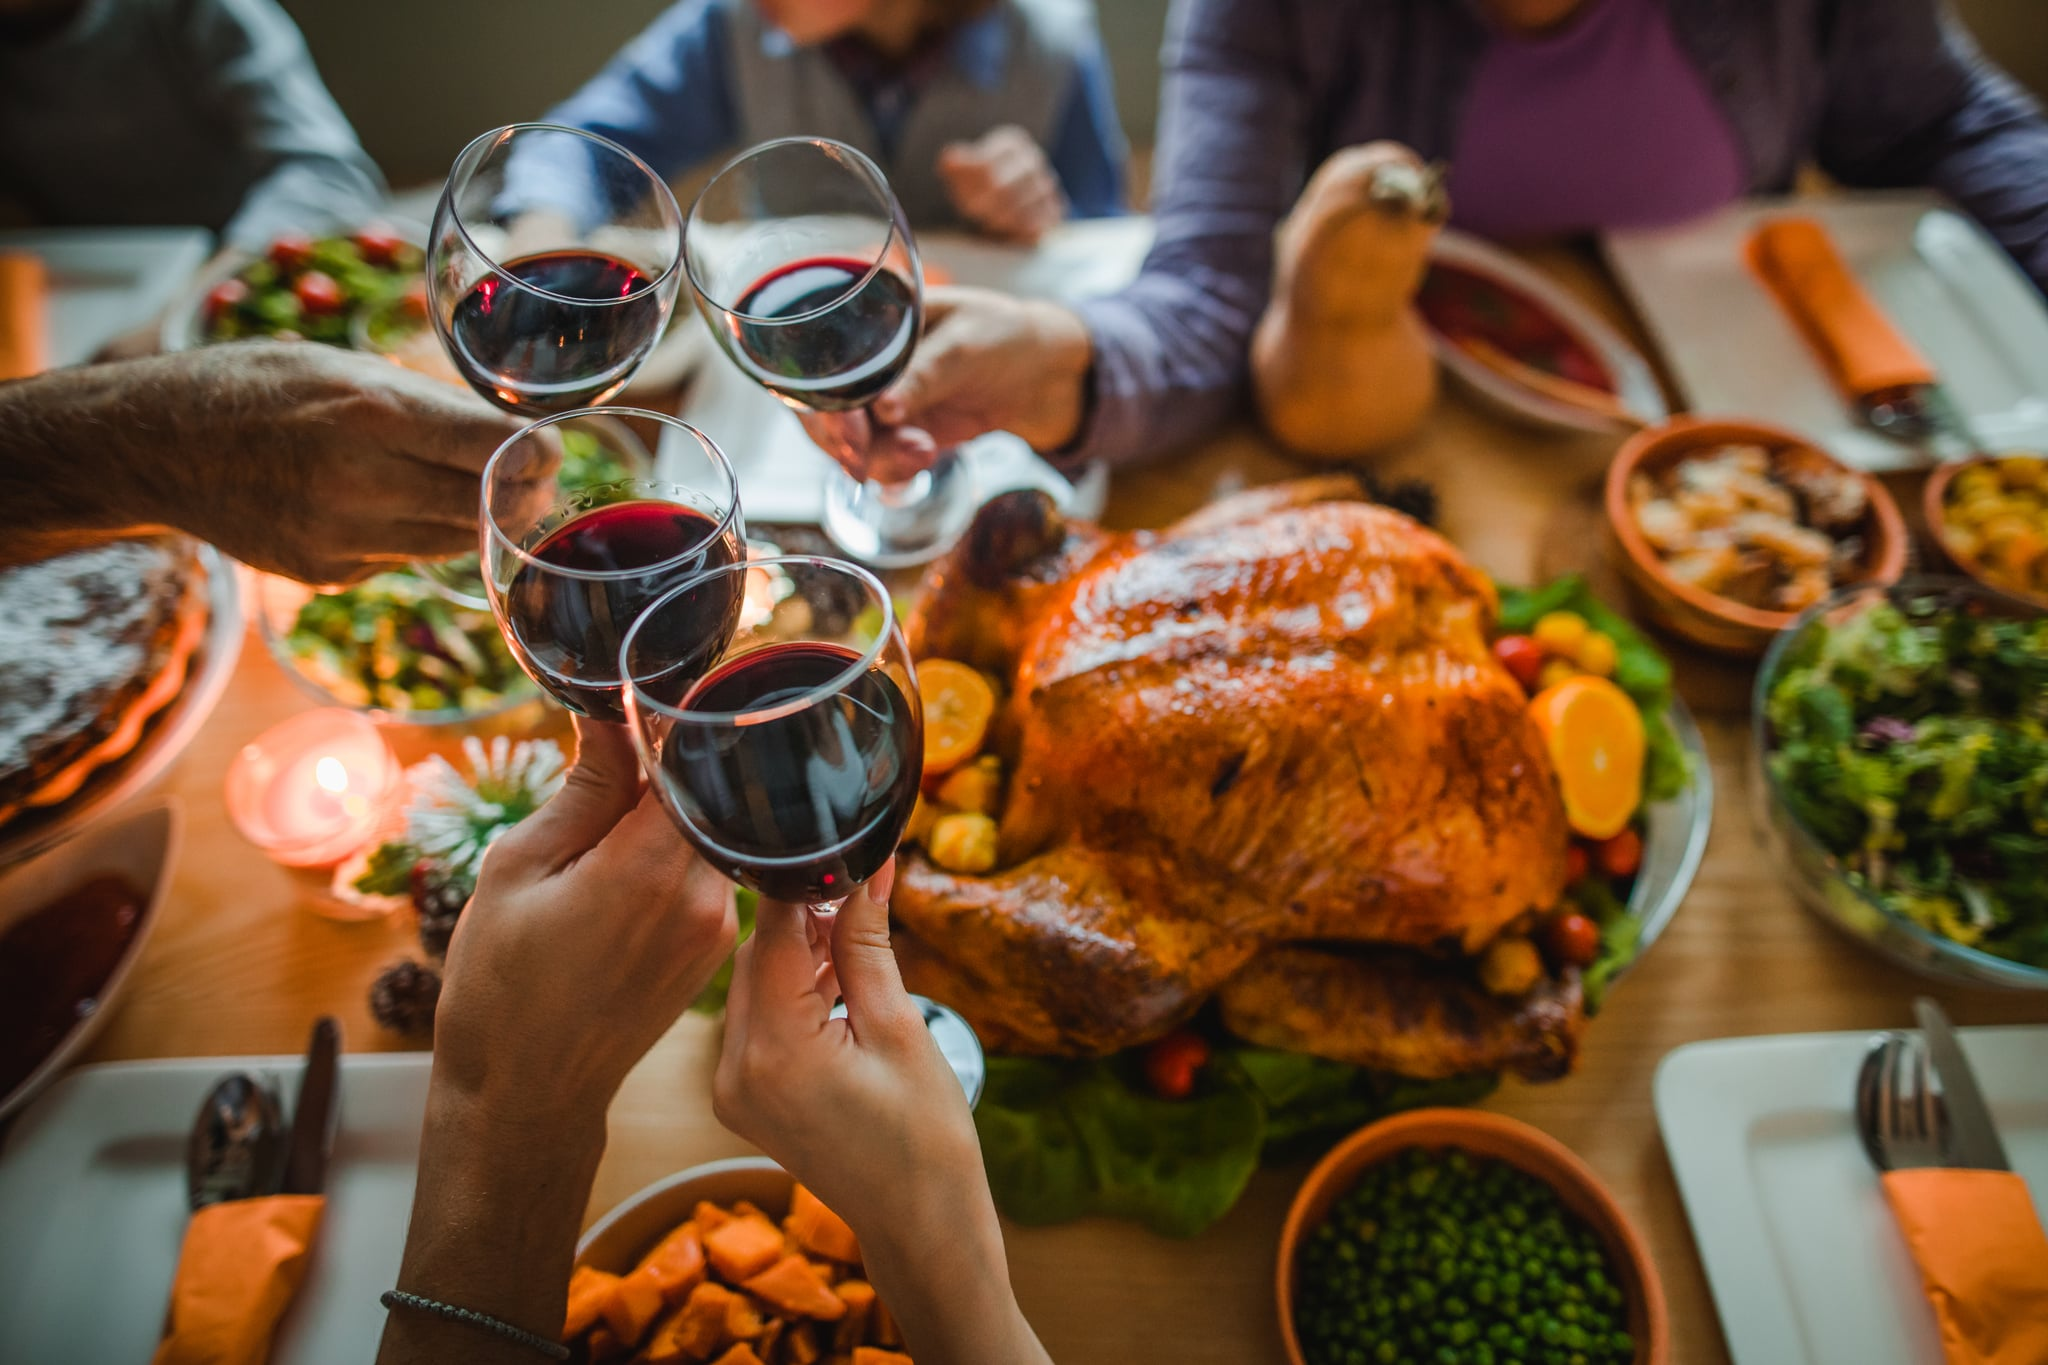 Group of unrecognisable people toasting with wine during Thanksgiving dinner at dining table.